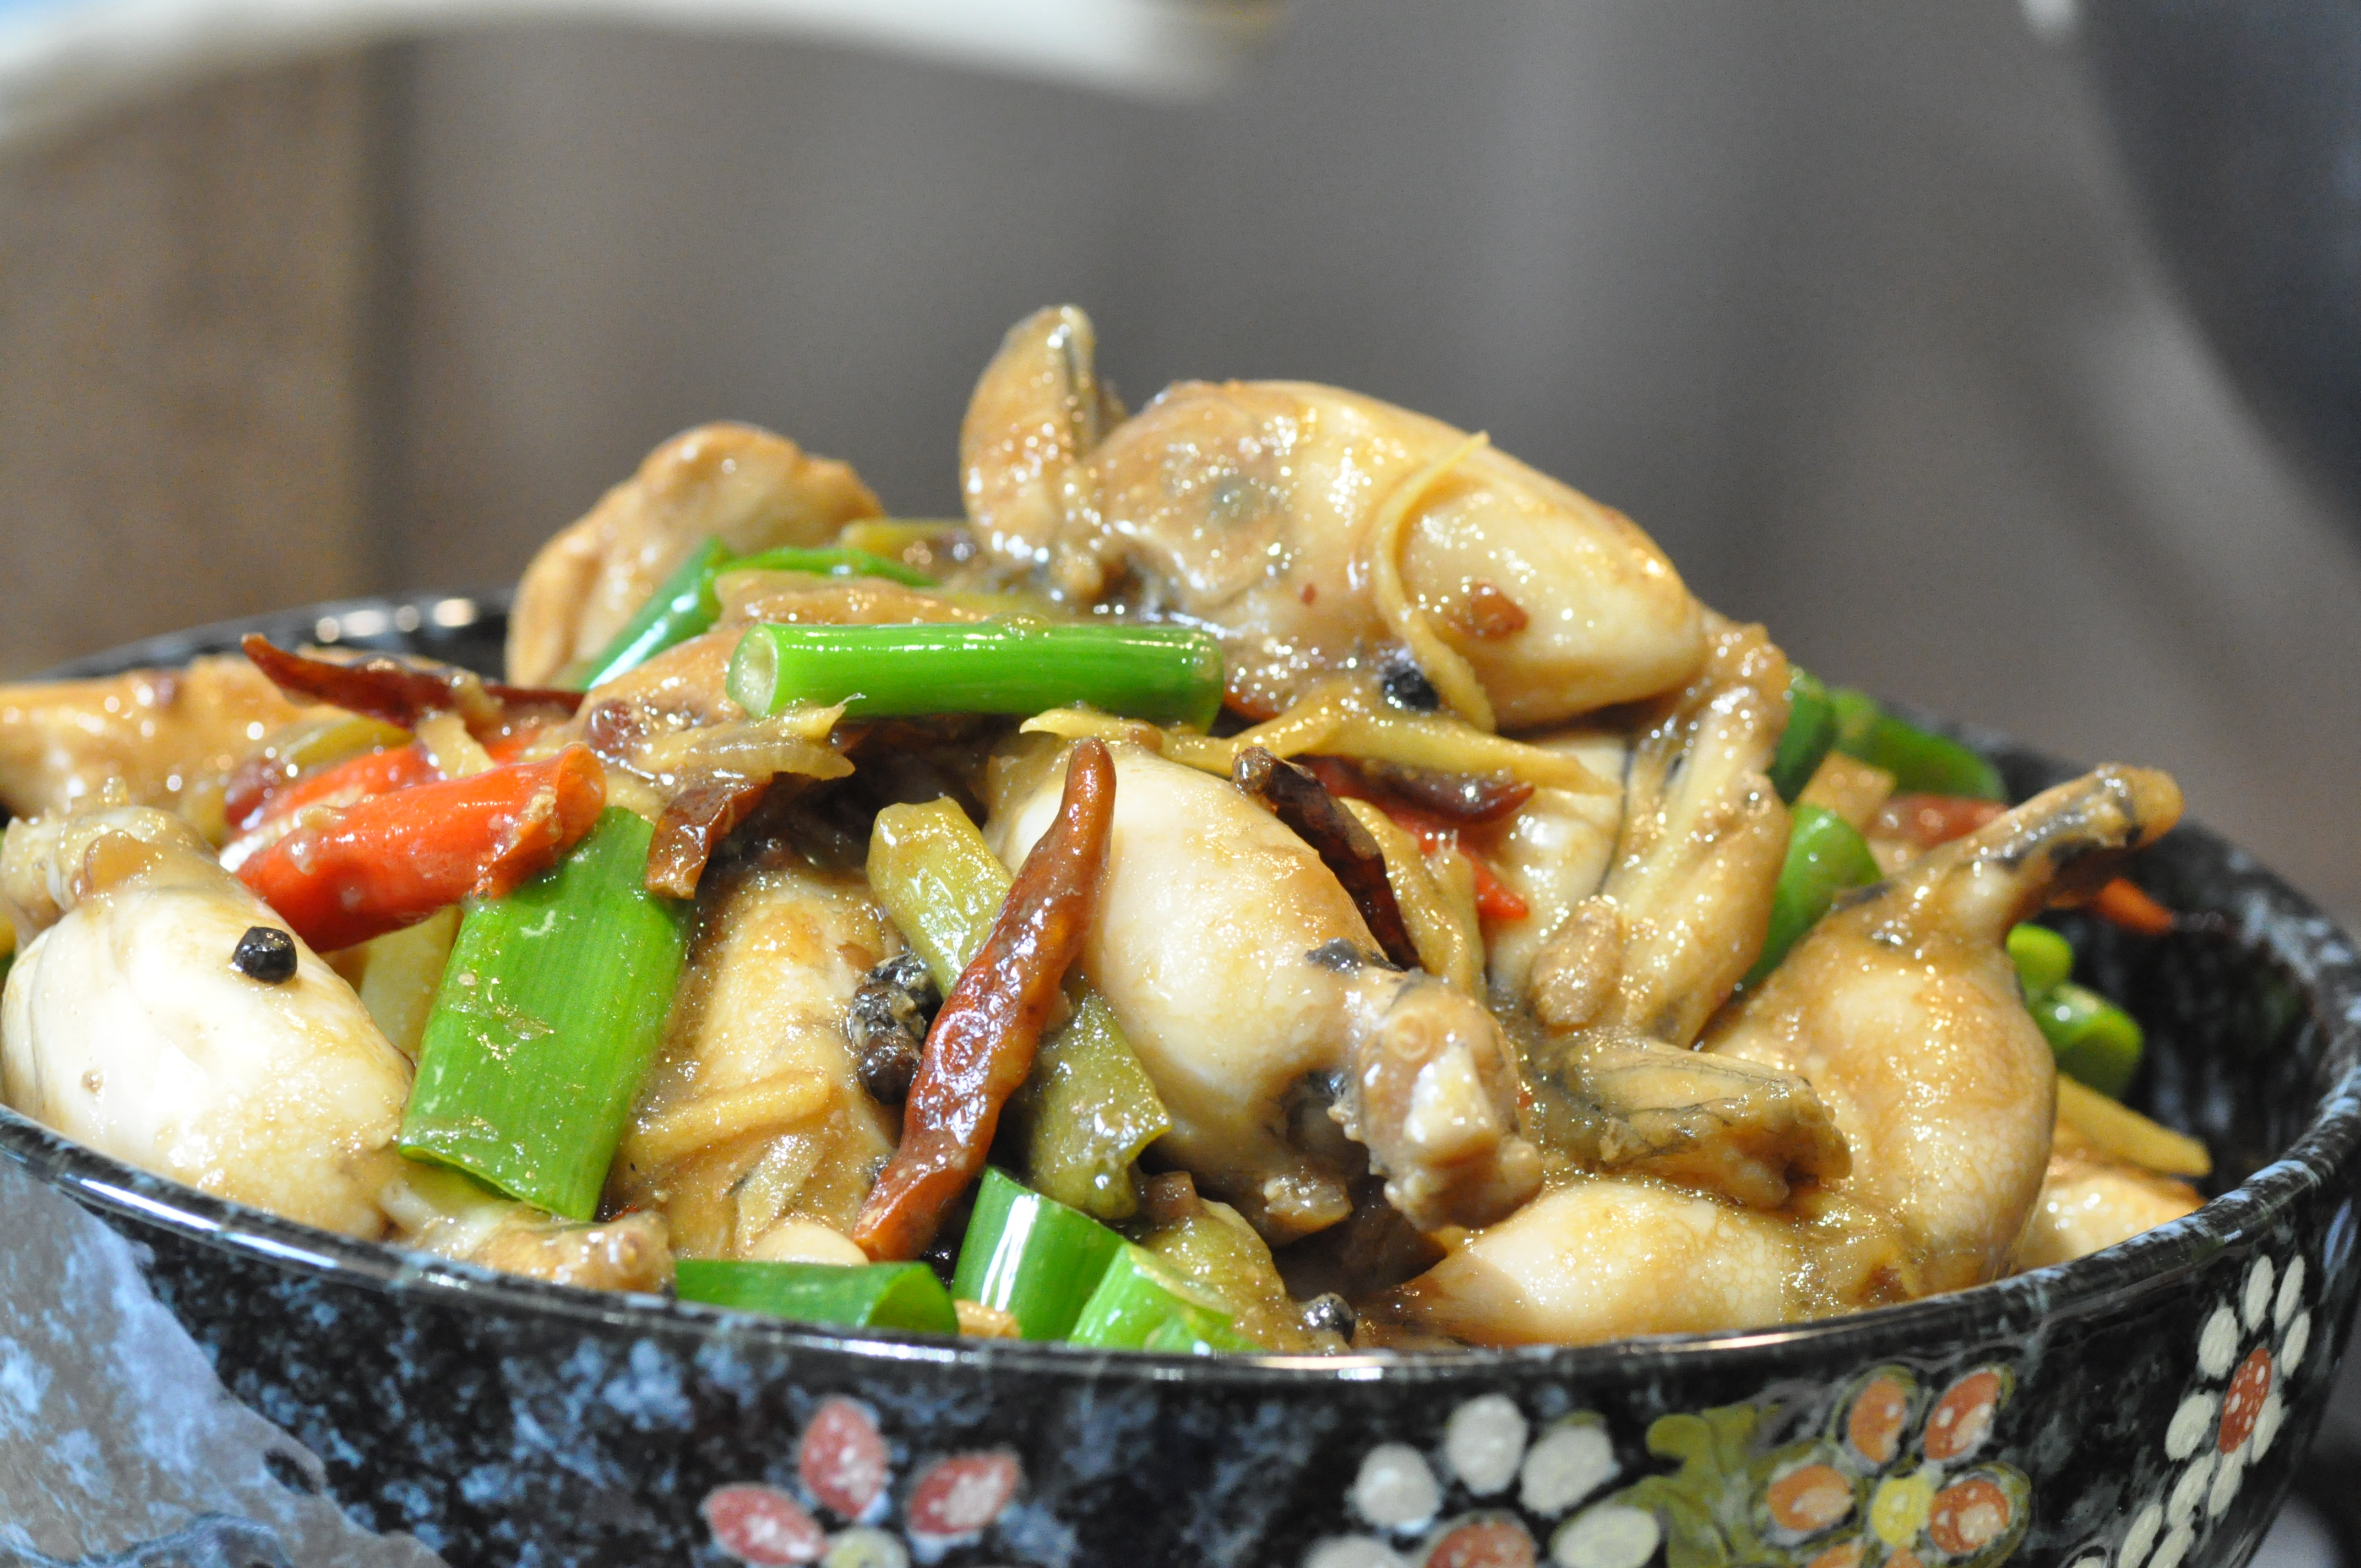 Claypot Kung Bao Boozy Frog Legs (砂煲宫保田鸡) – Special